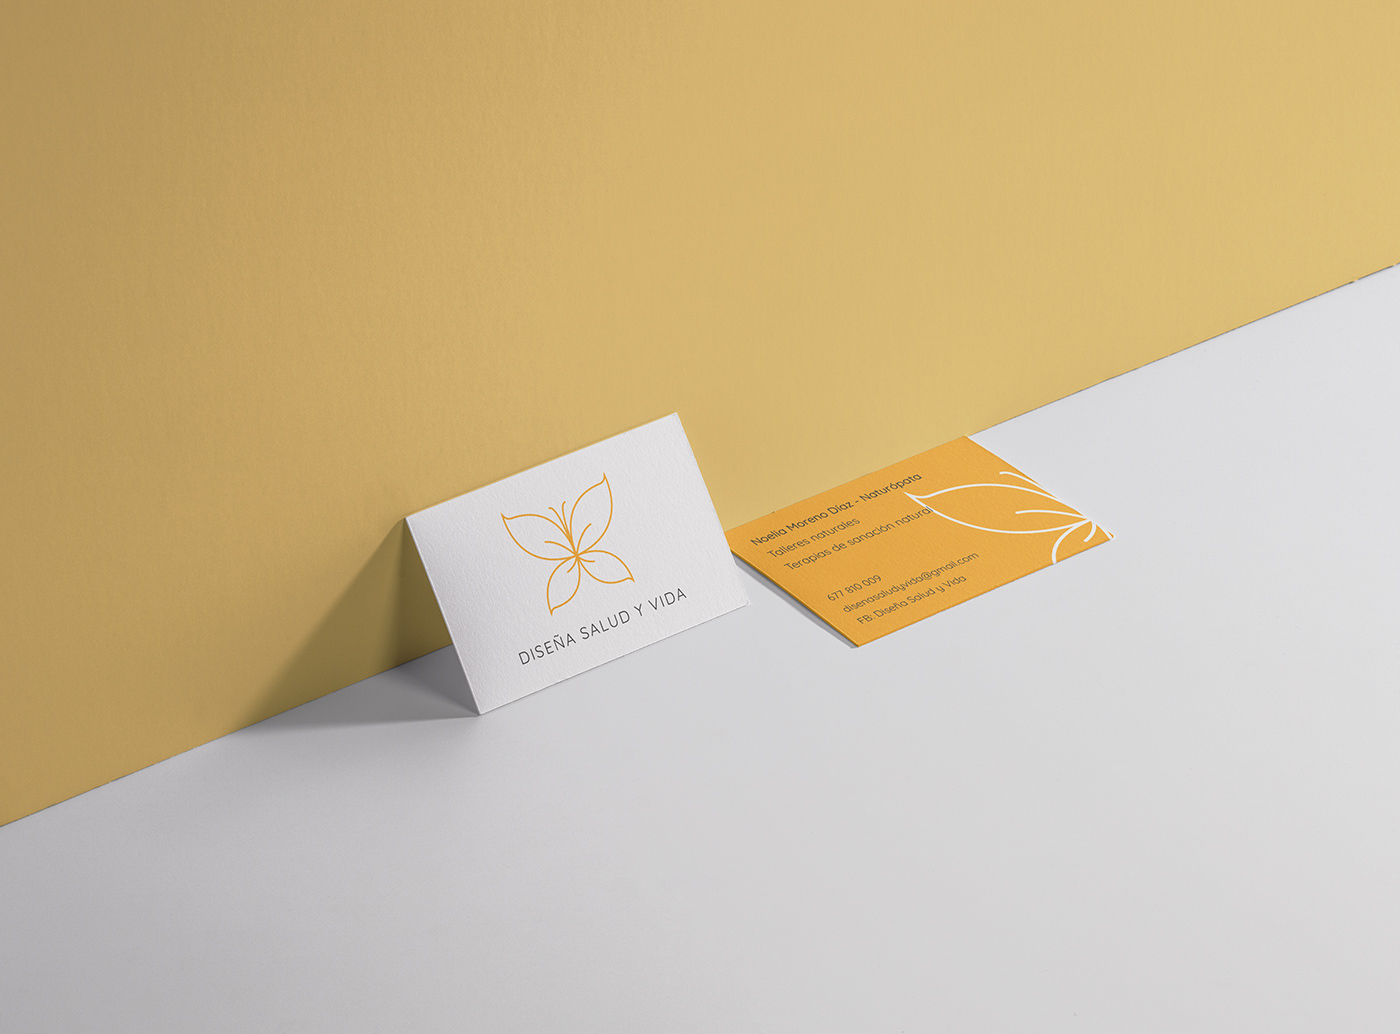 branding  butterfly elegant gold mariposa natural Nature oro terapia therapy